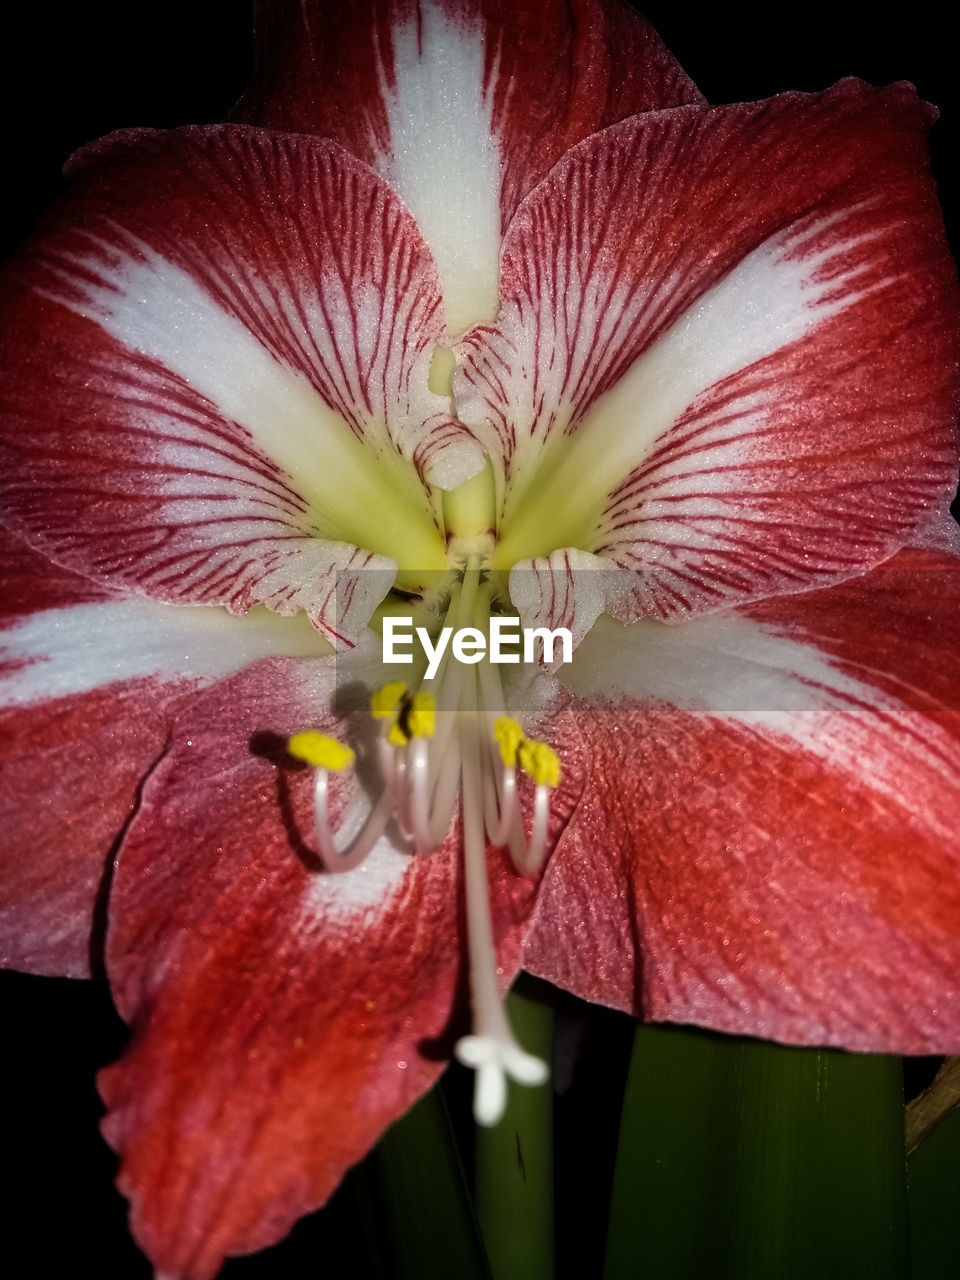 flower, petal, flower head, fragility, growth, beauty in nature, freshness, nature, plant, close-up, red, pollen, day, outdoors, stamen, no people, blooming, hibiscus, day lily